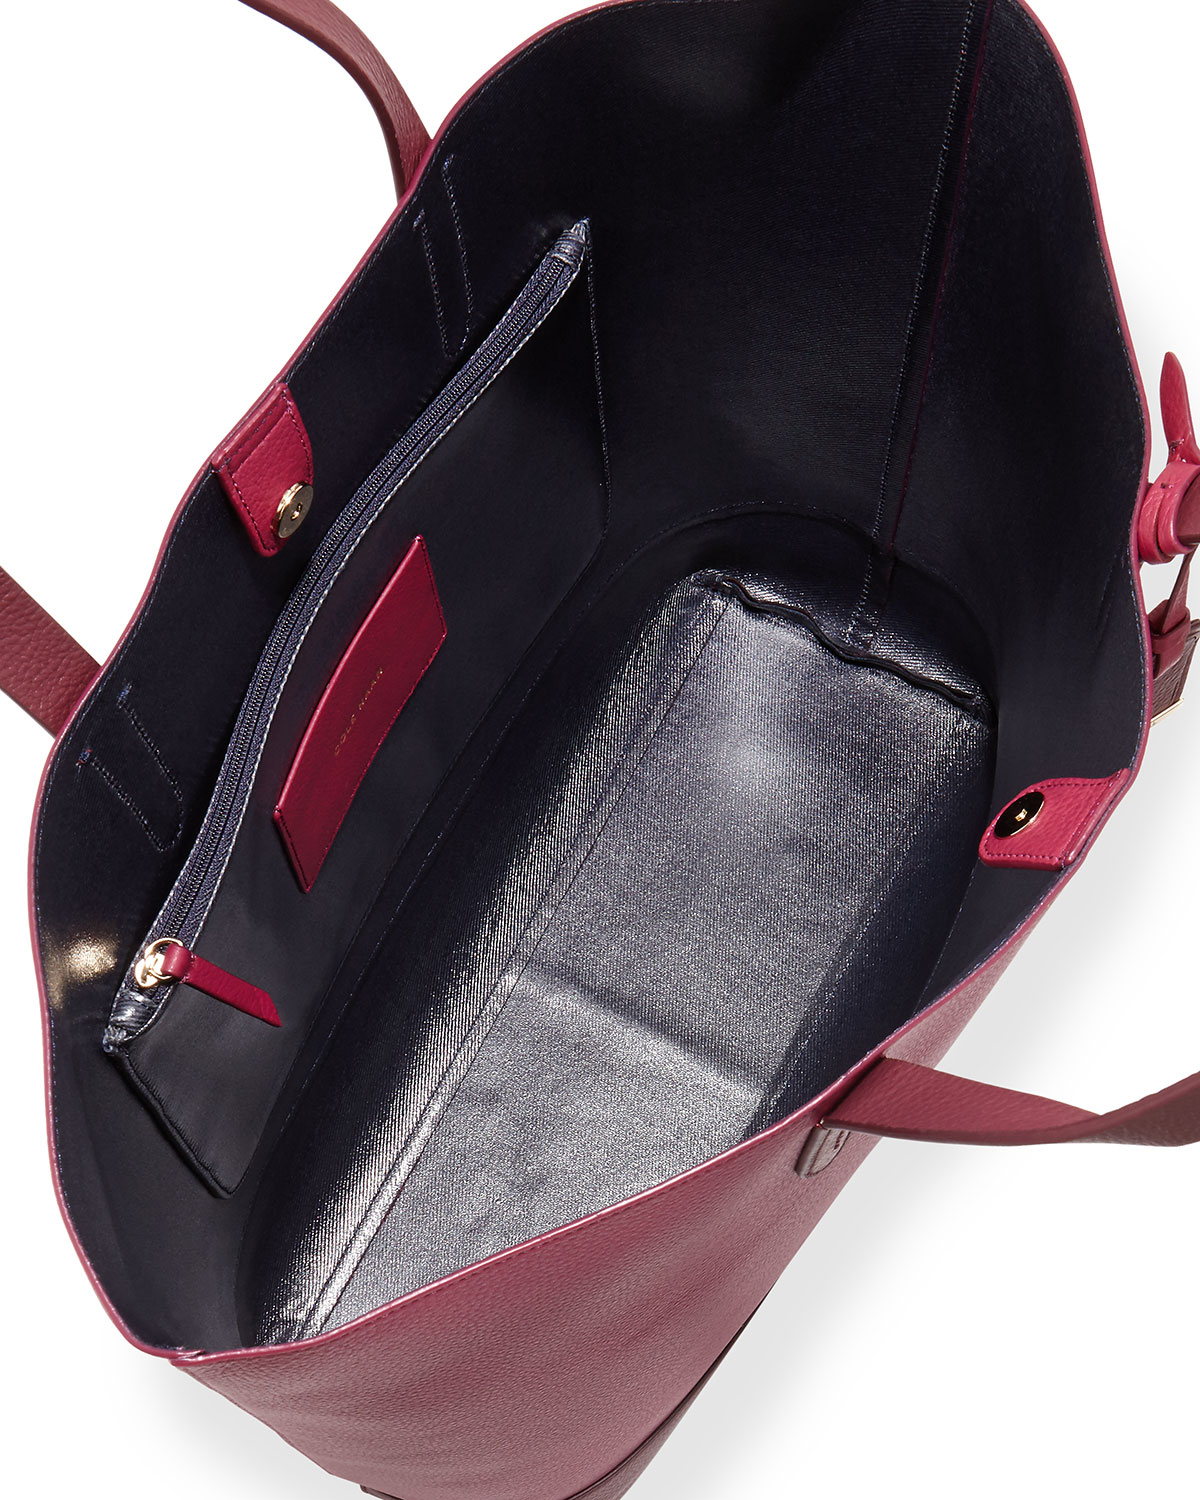 Cole Haan Large Two Tone Leather Tote Bag In Red Lyst